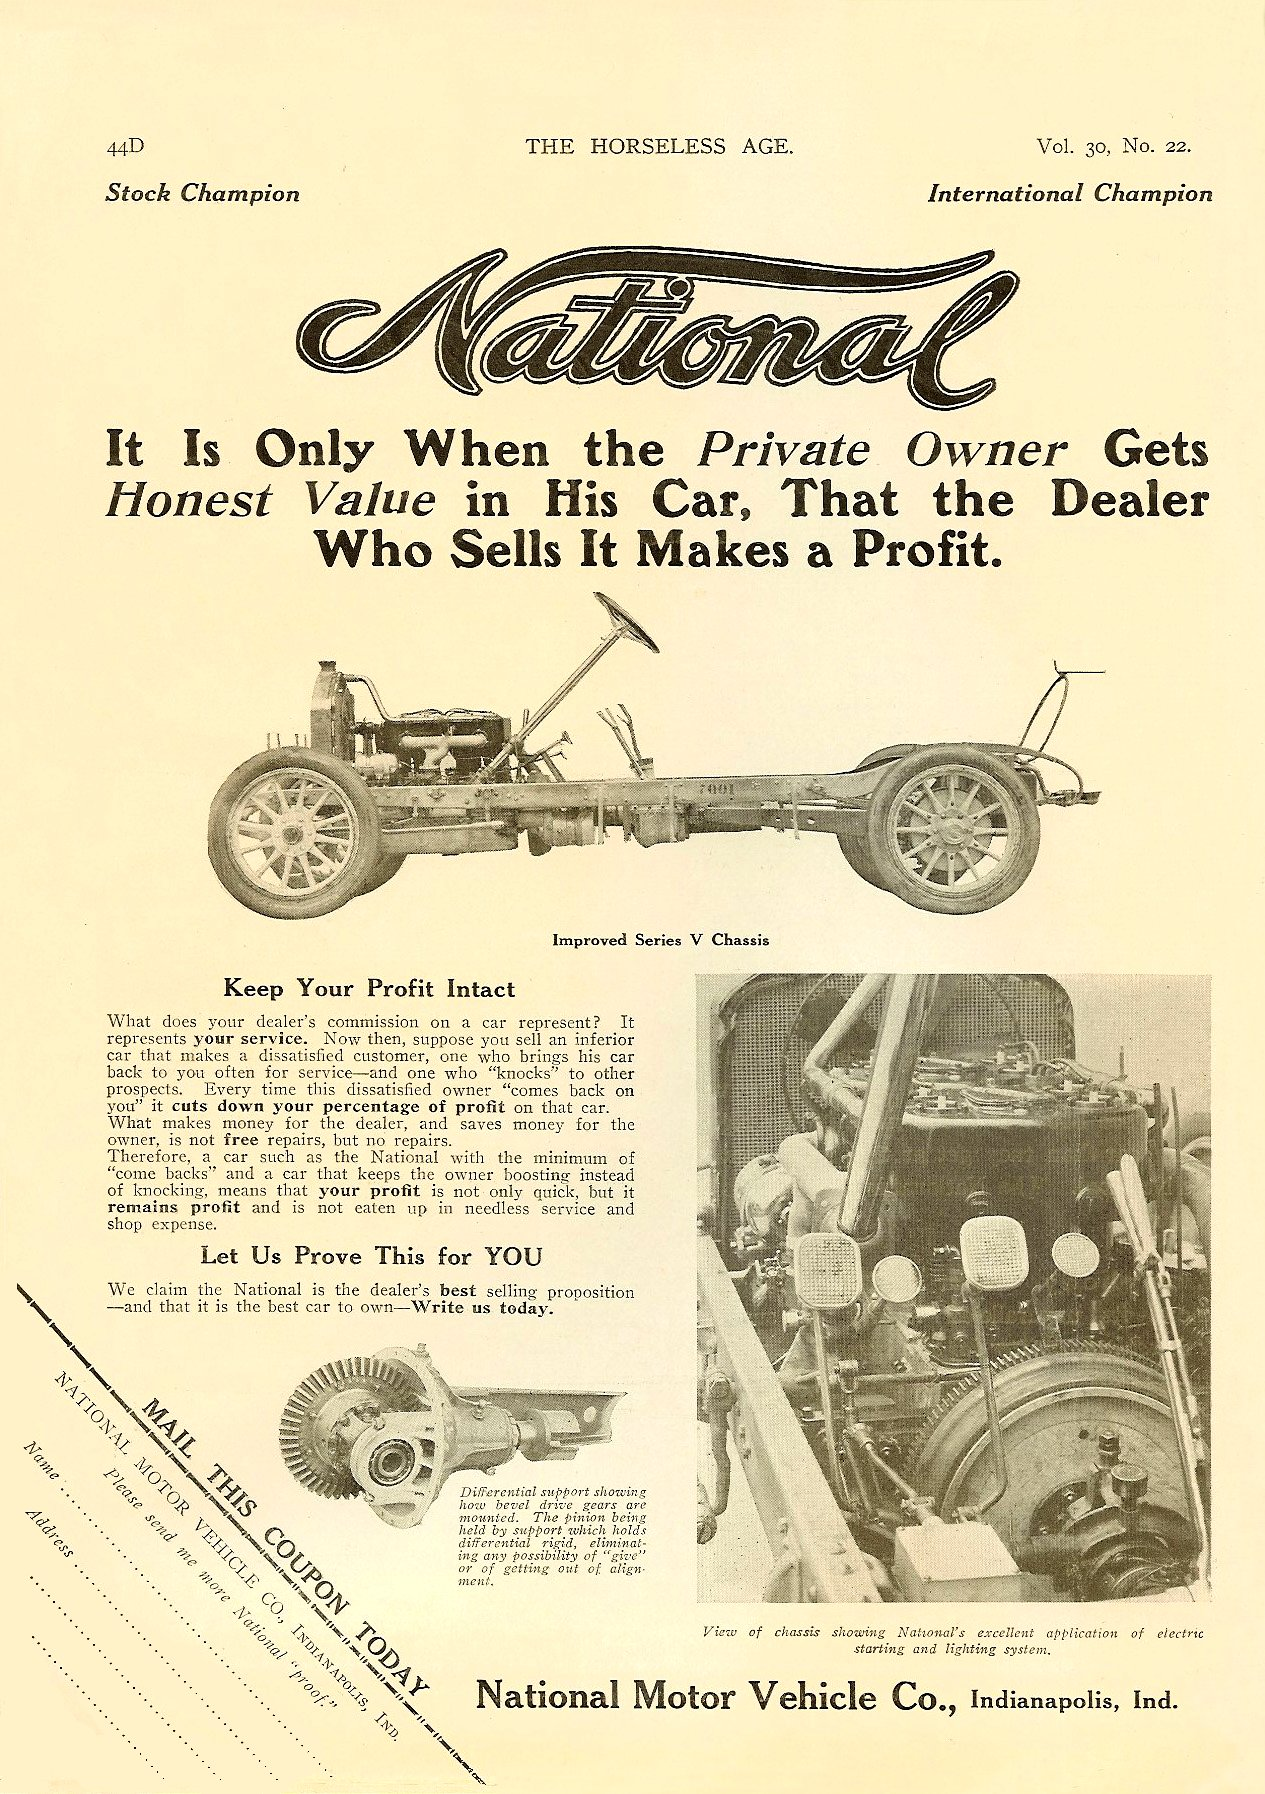 1913 11 27 NATIONAL National Improved Series V Fives Models – $2750 to $3400 THE HORSELESS AGE Vol. 30, No. 22 November 27, 1912 9″x12″ page 44D